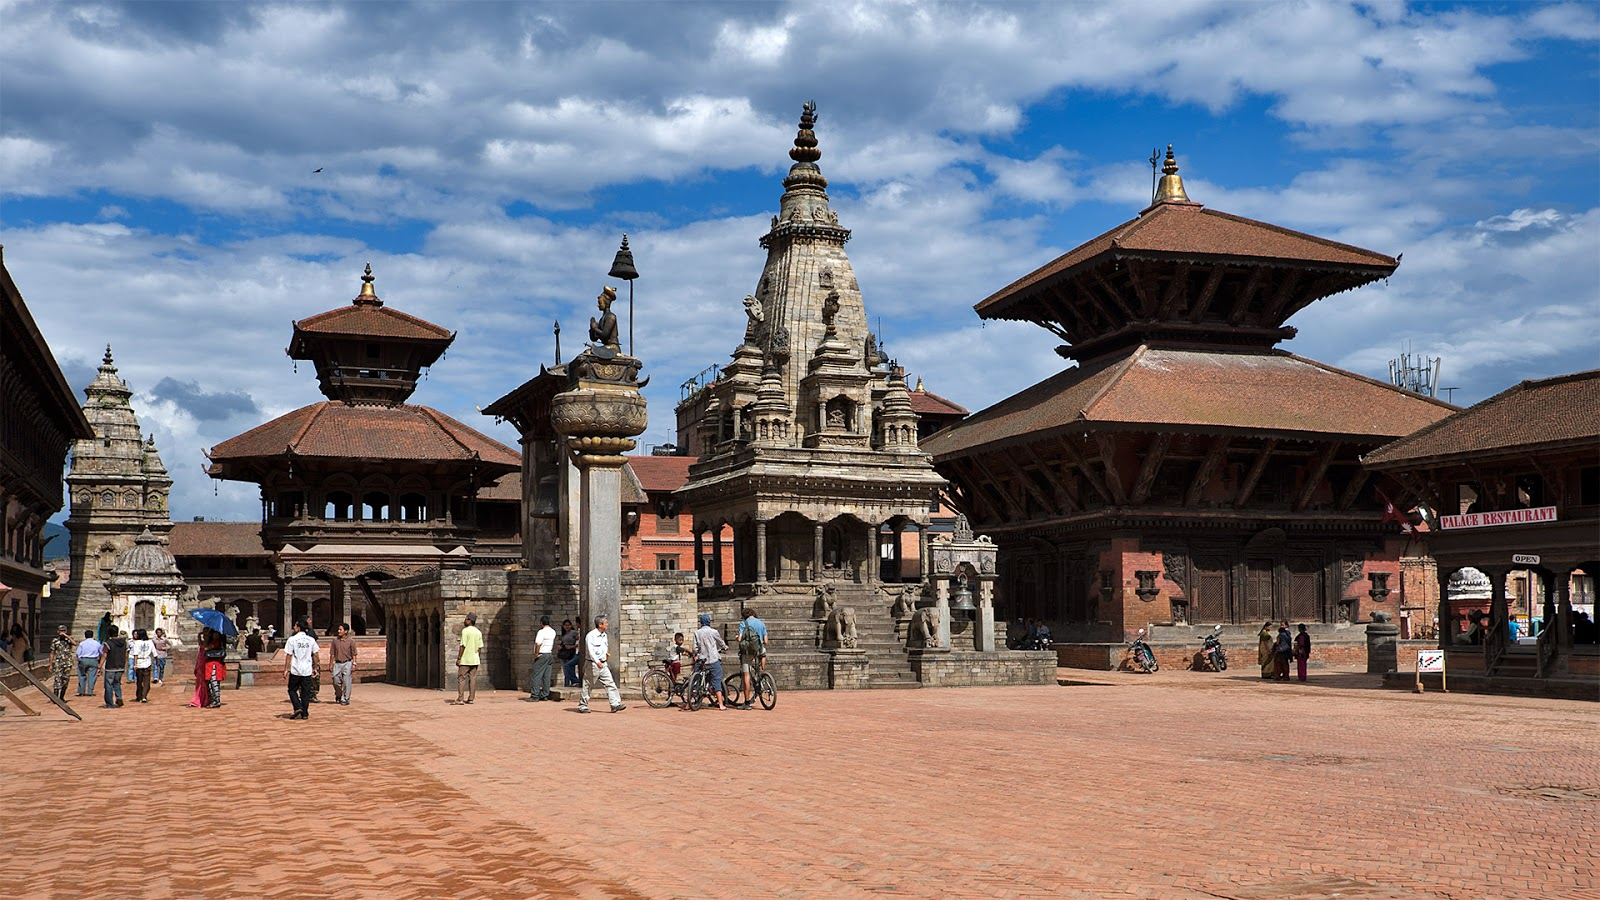 Top 5 spots to visit in Nepal